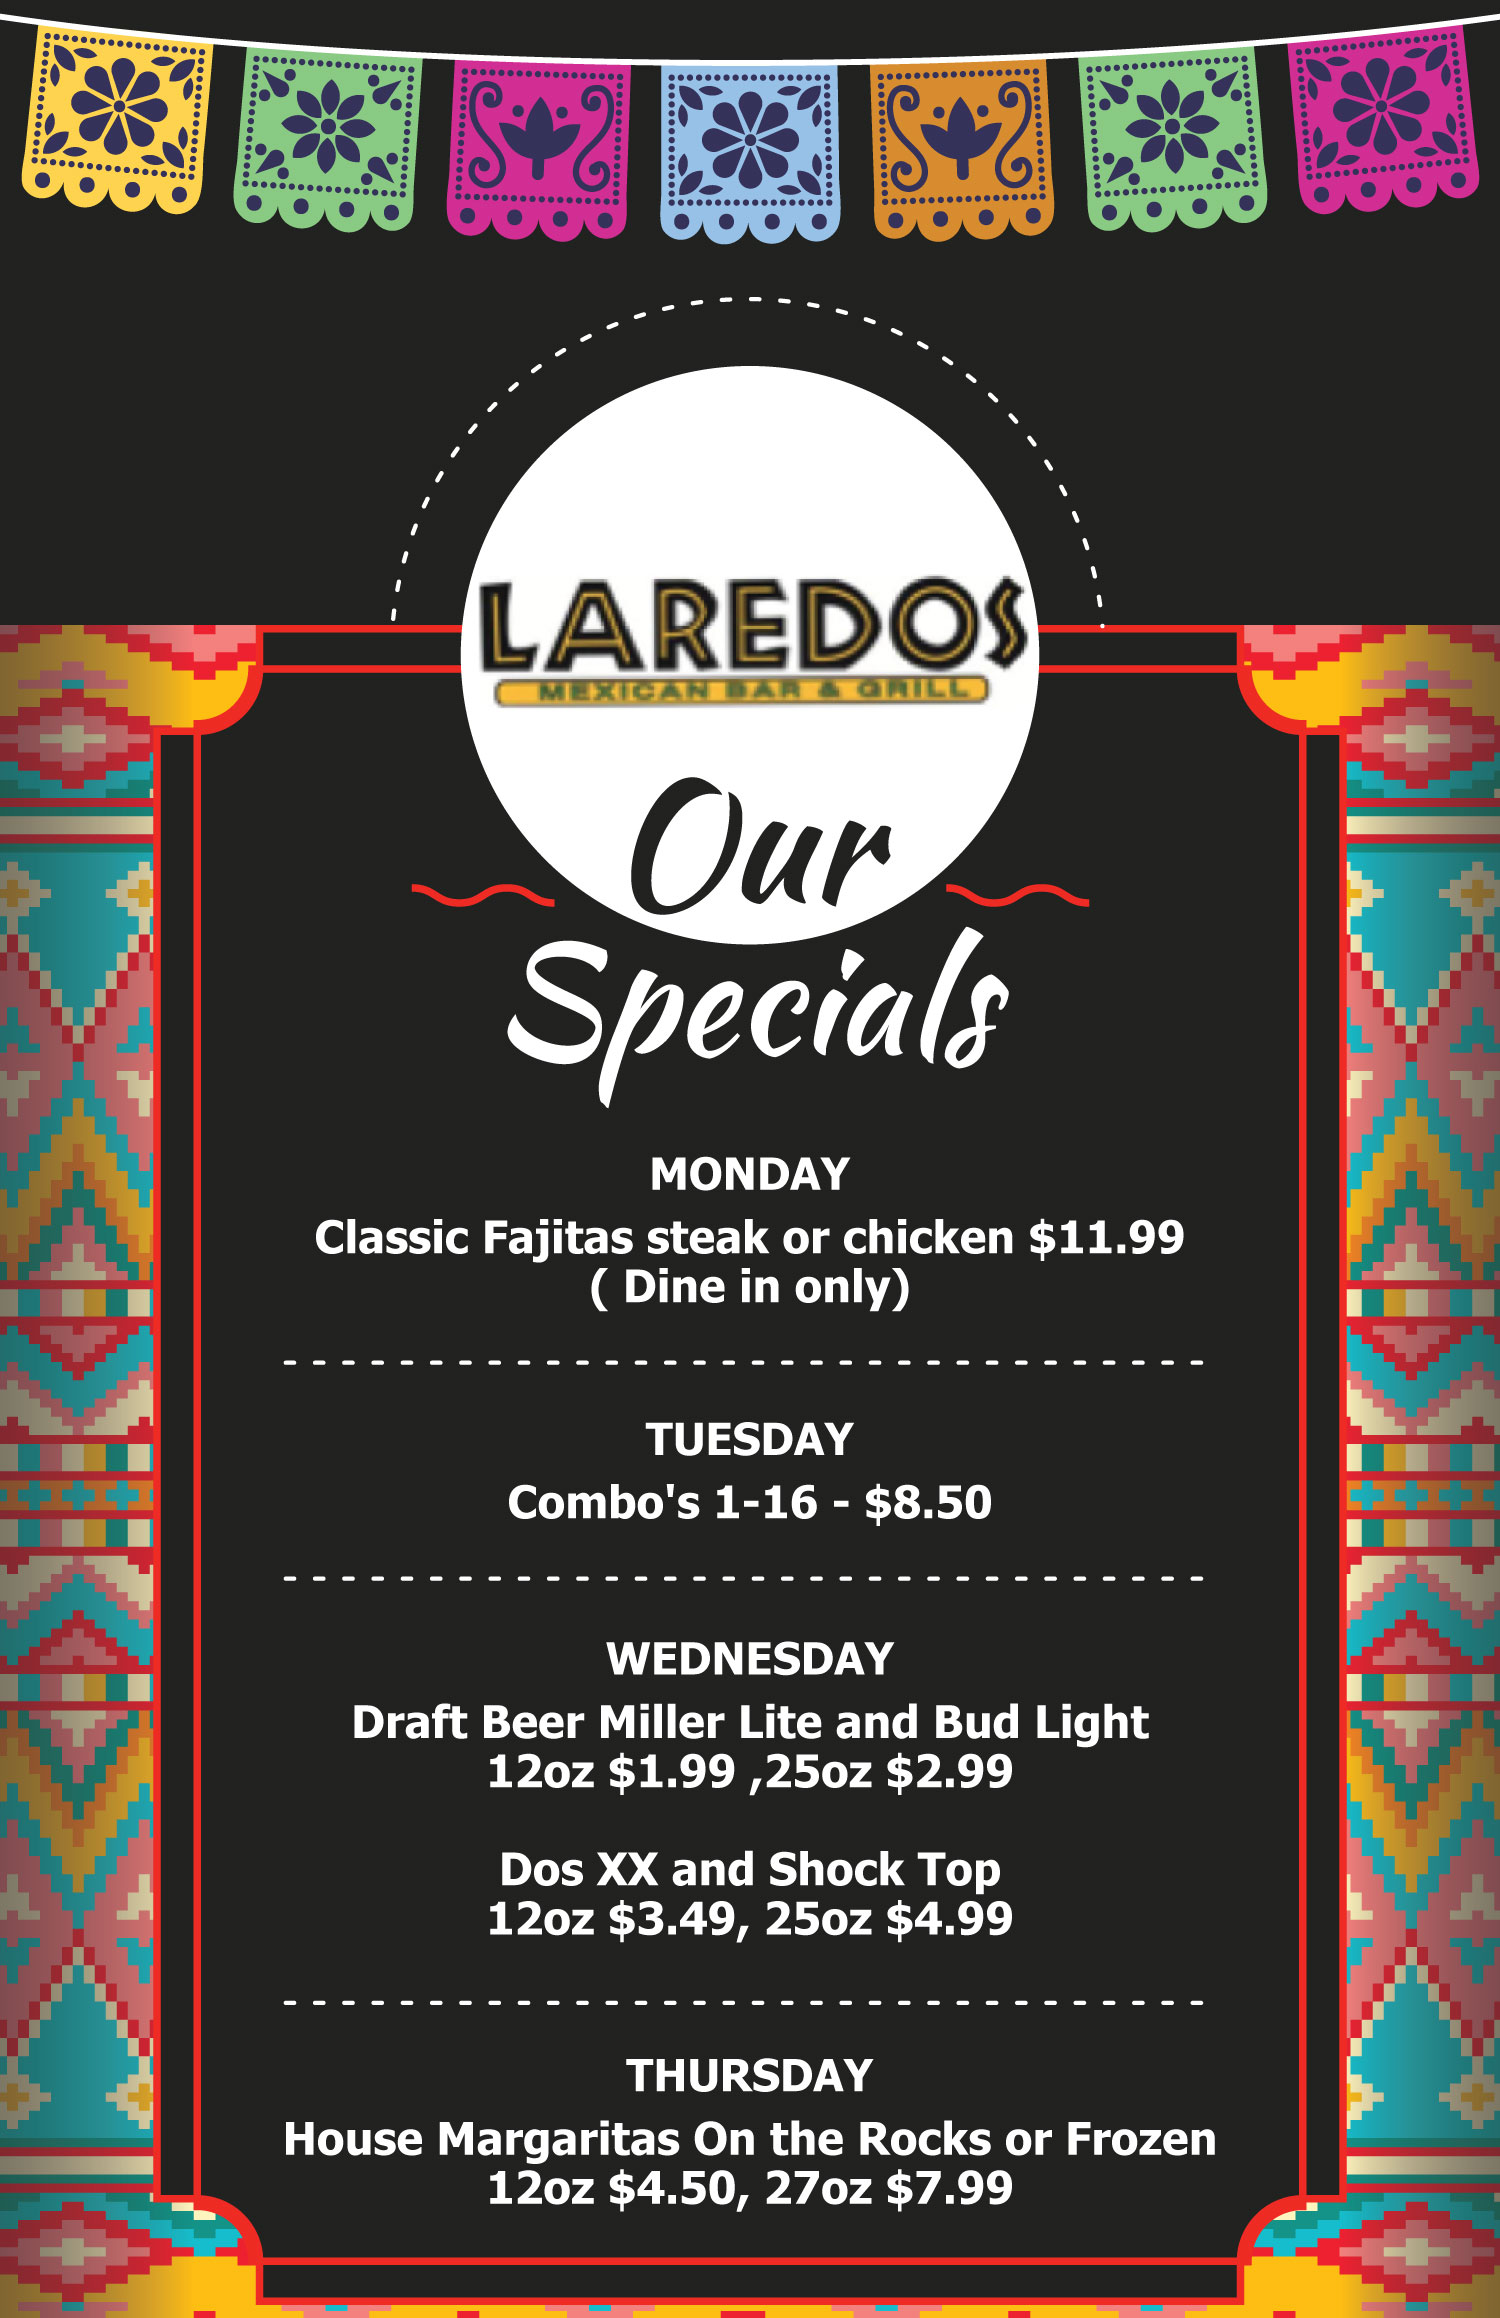 Specials apply at Laredos Kennesaw South